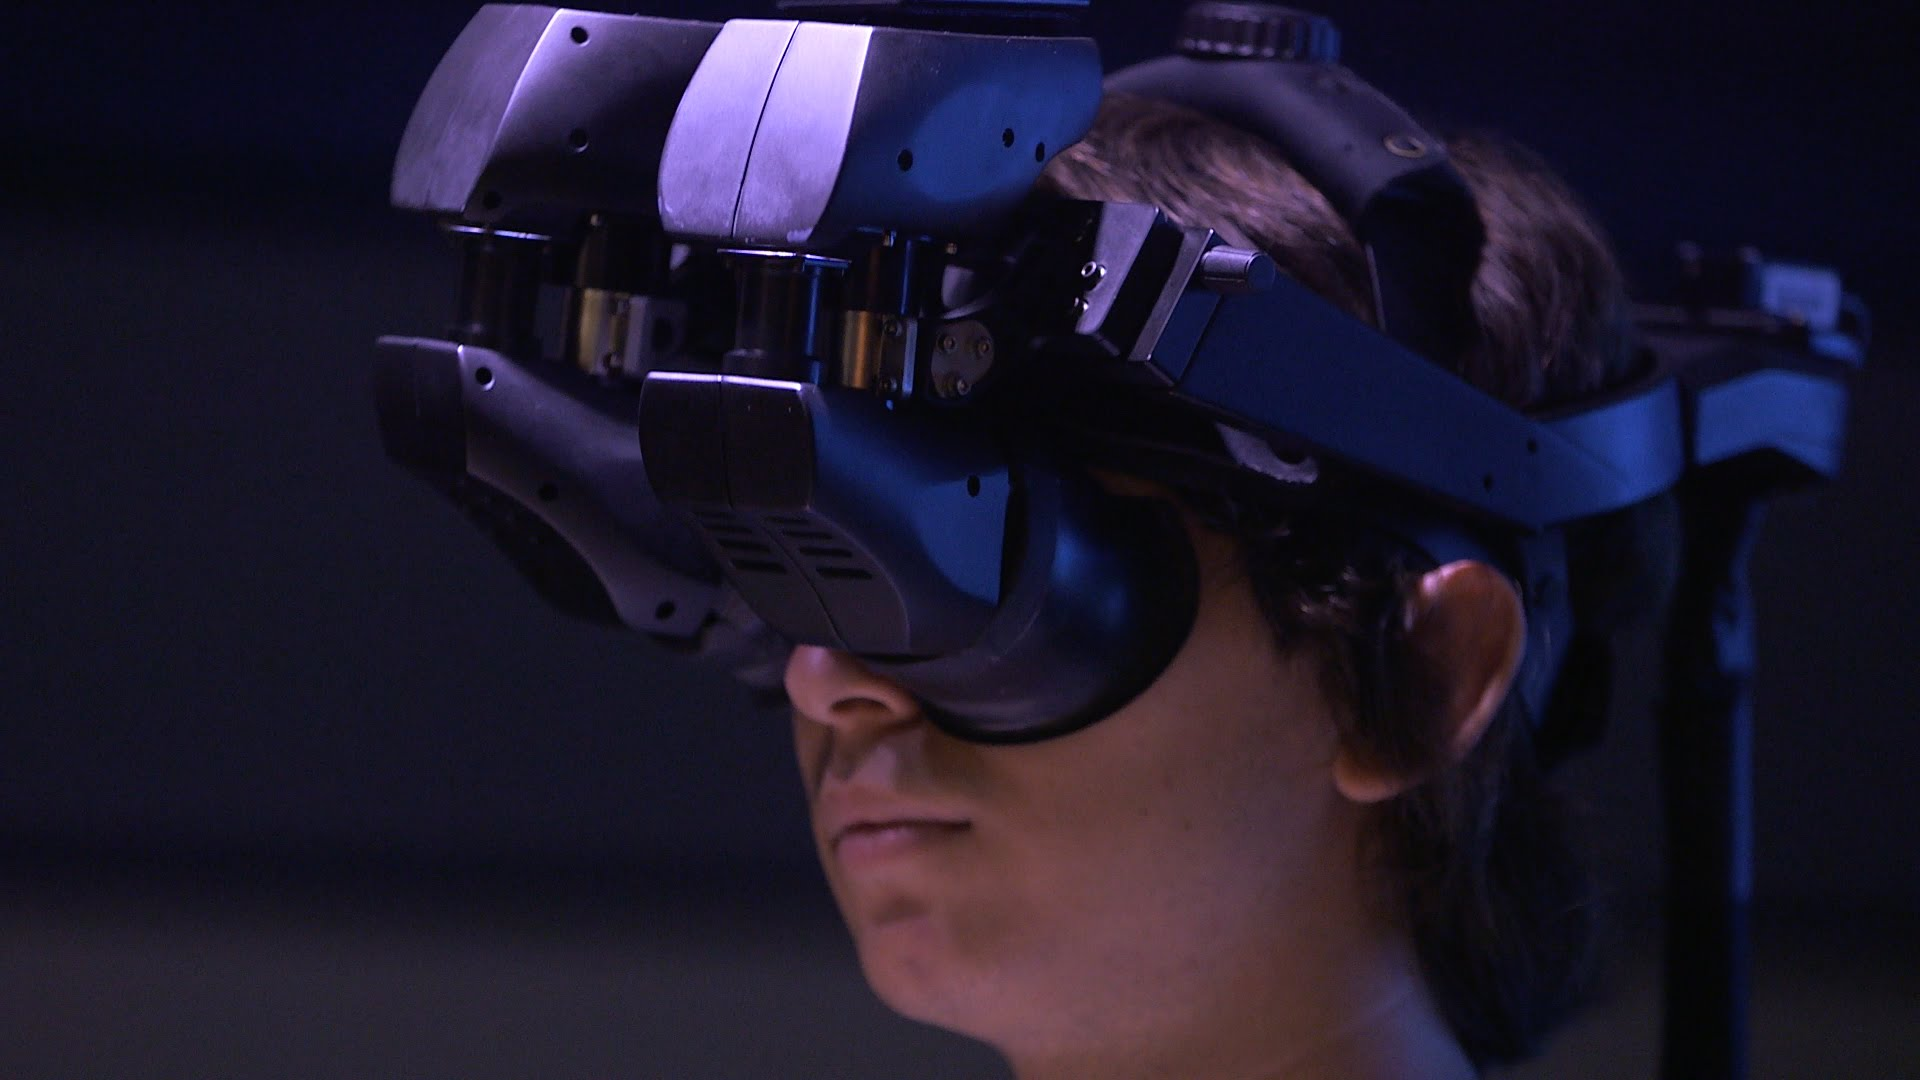 What you see is not always what you get: how virtual reality can manipulate our minds [Video]